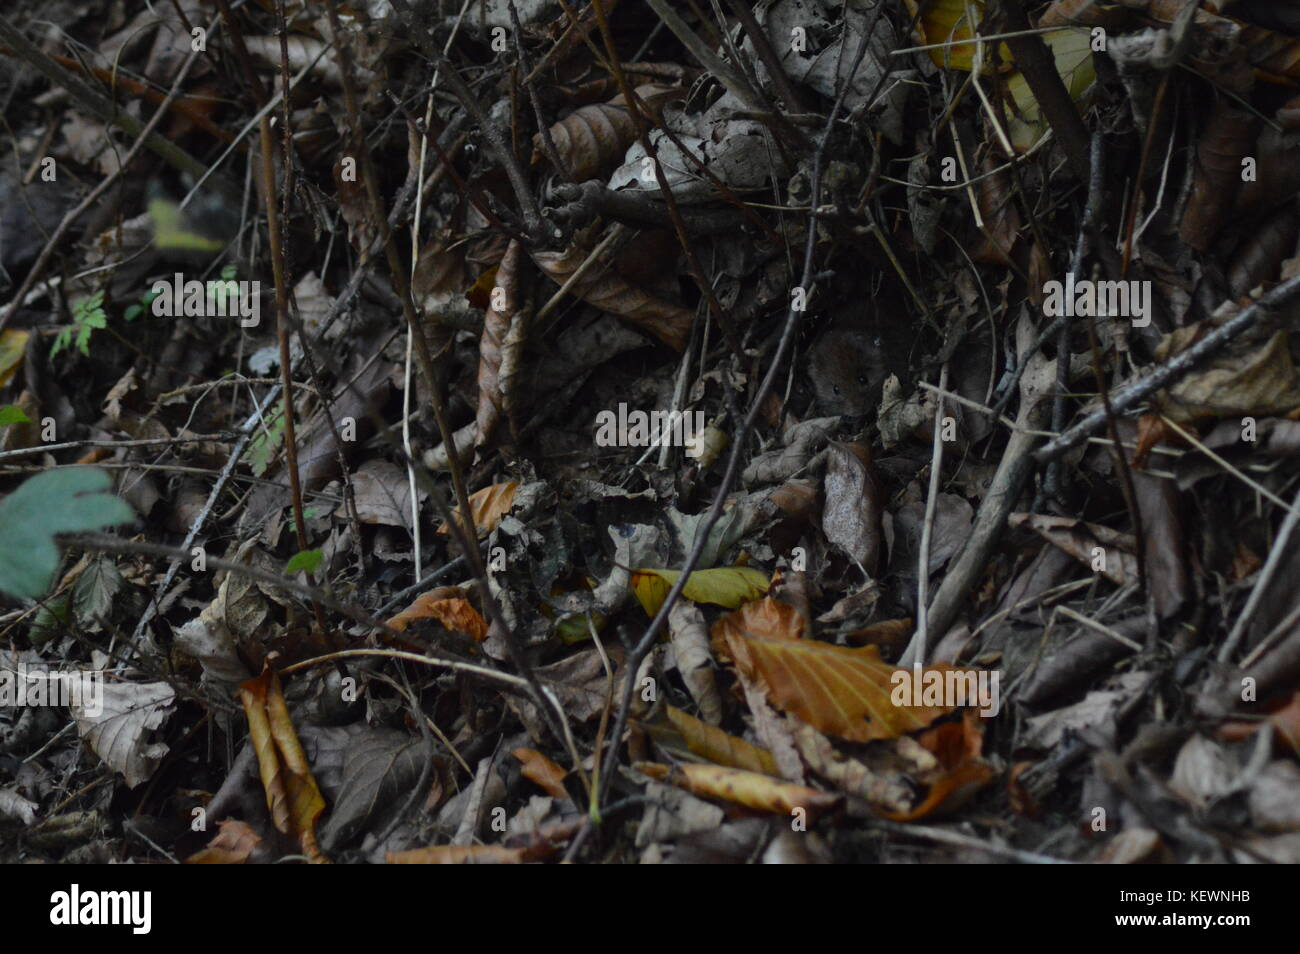 A tiny mouse hiding in woodland edge - Stock Image